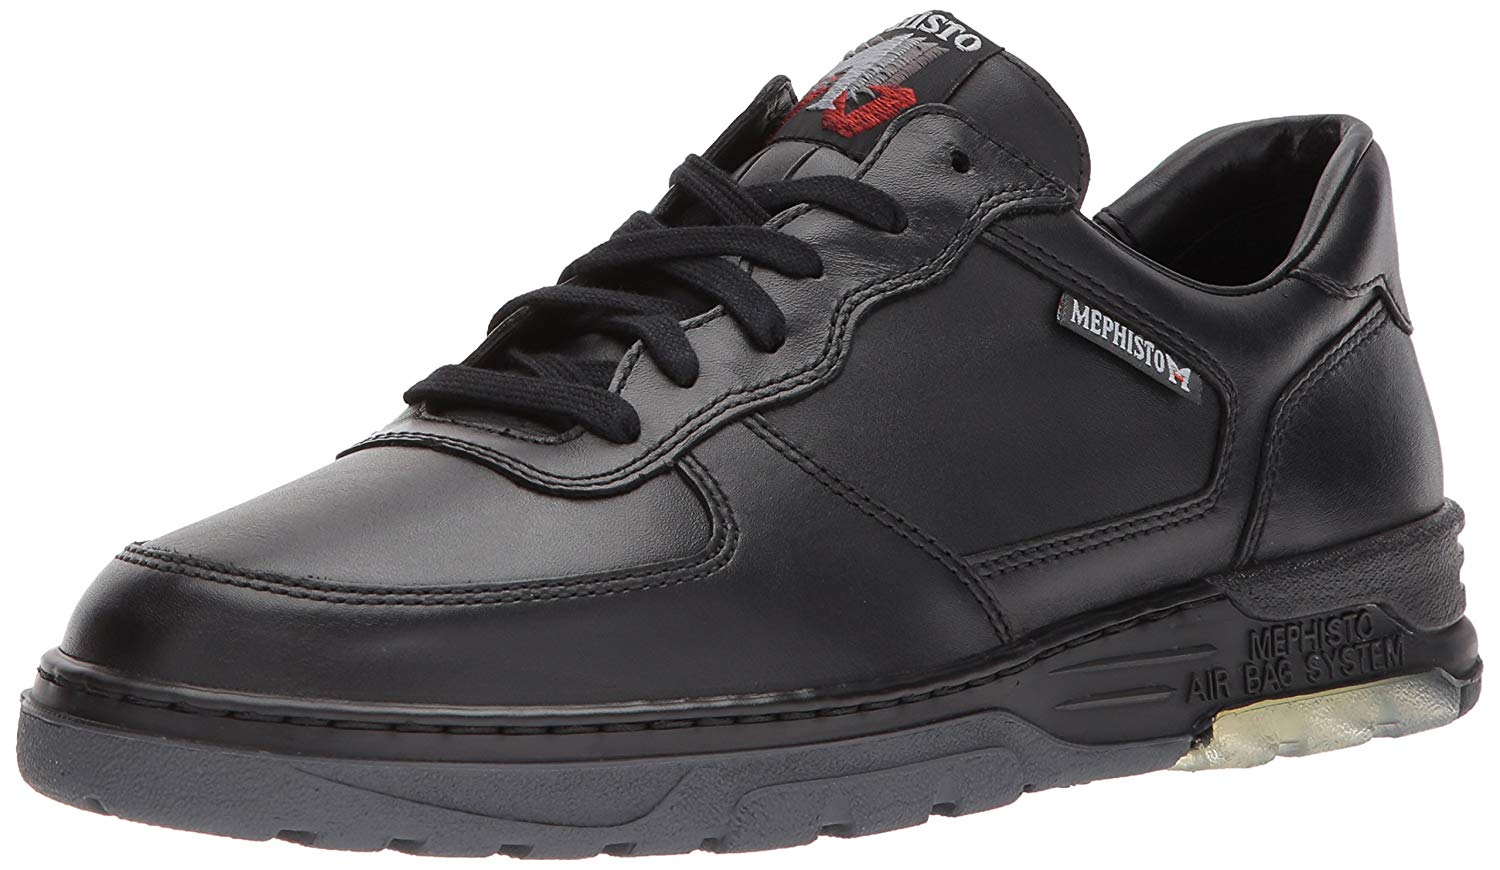 45ec74b2aca Find Mephisto Available In The Shoes Section at Sears.